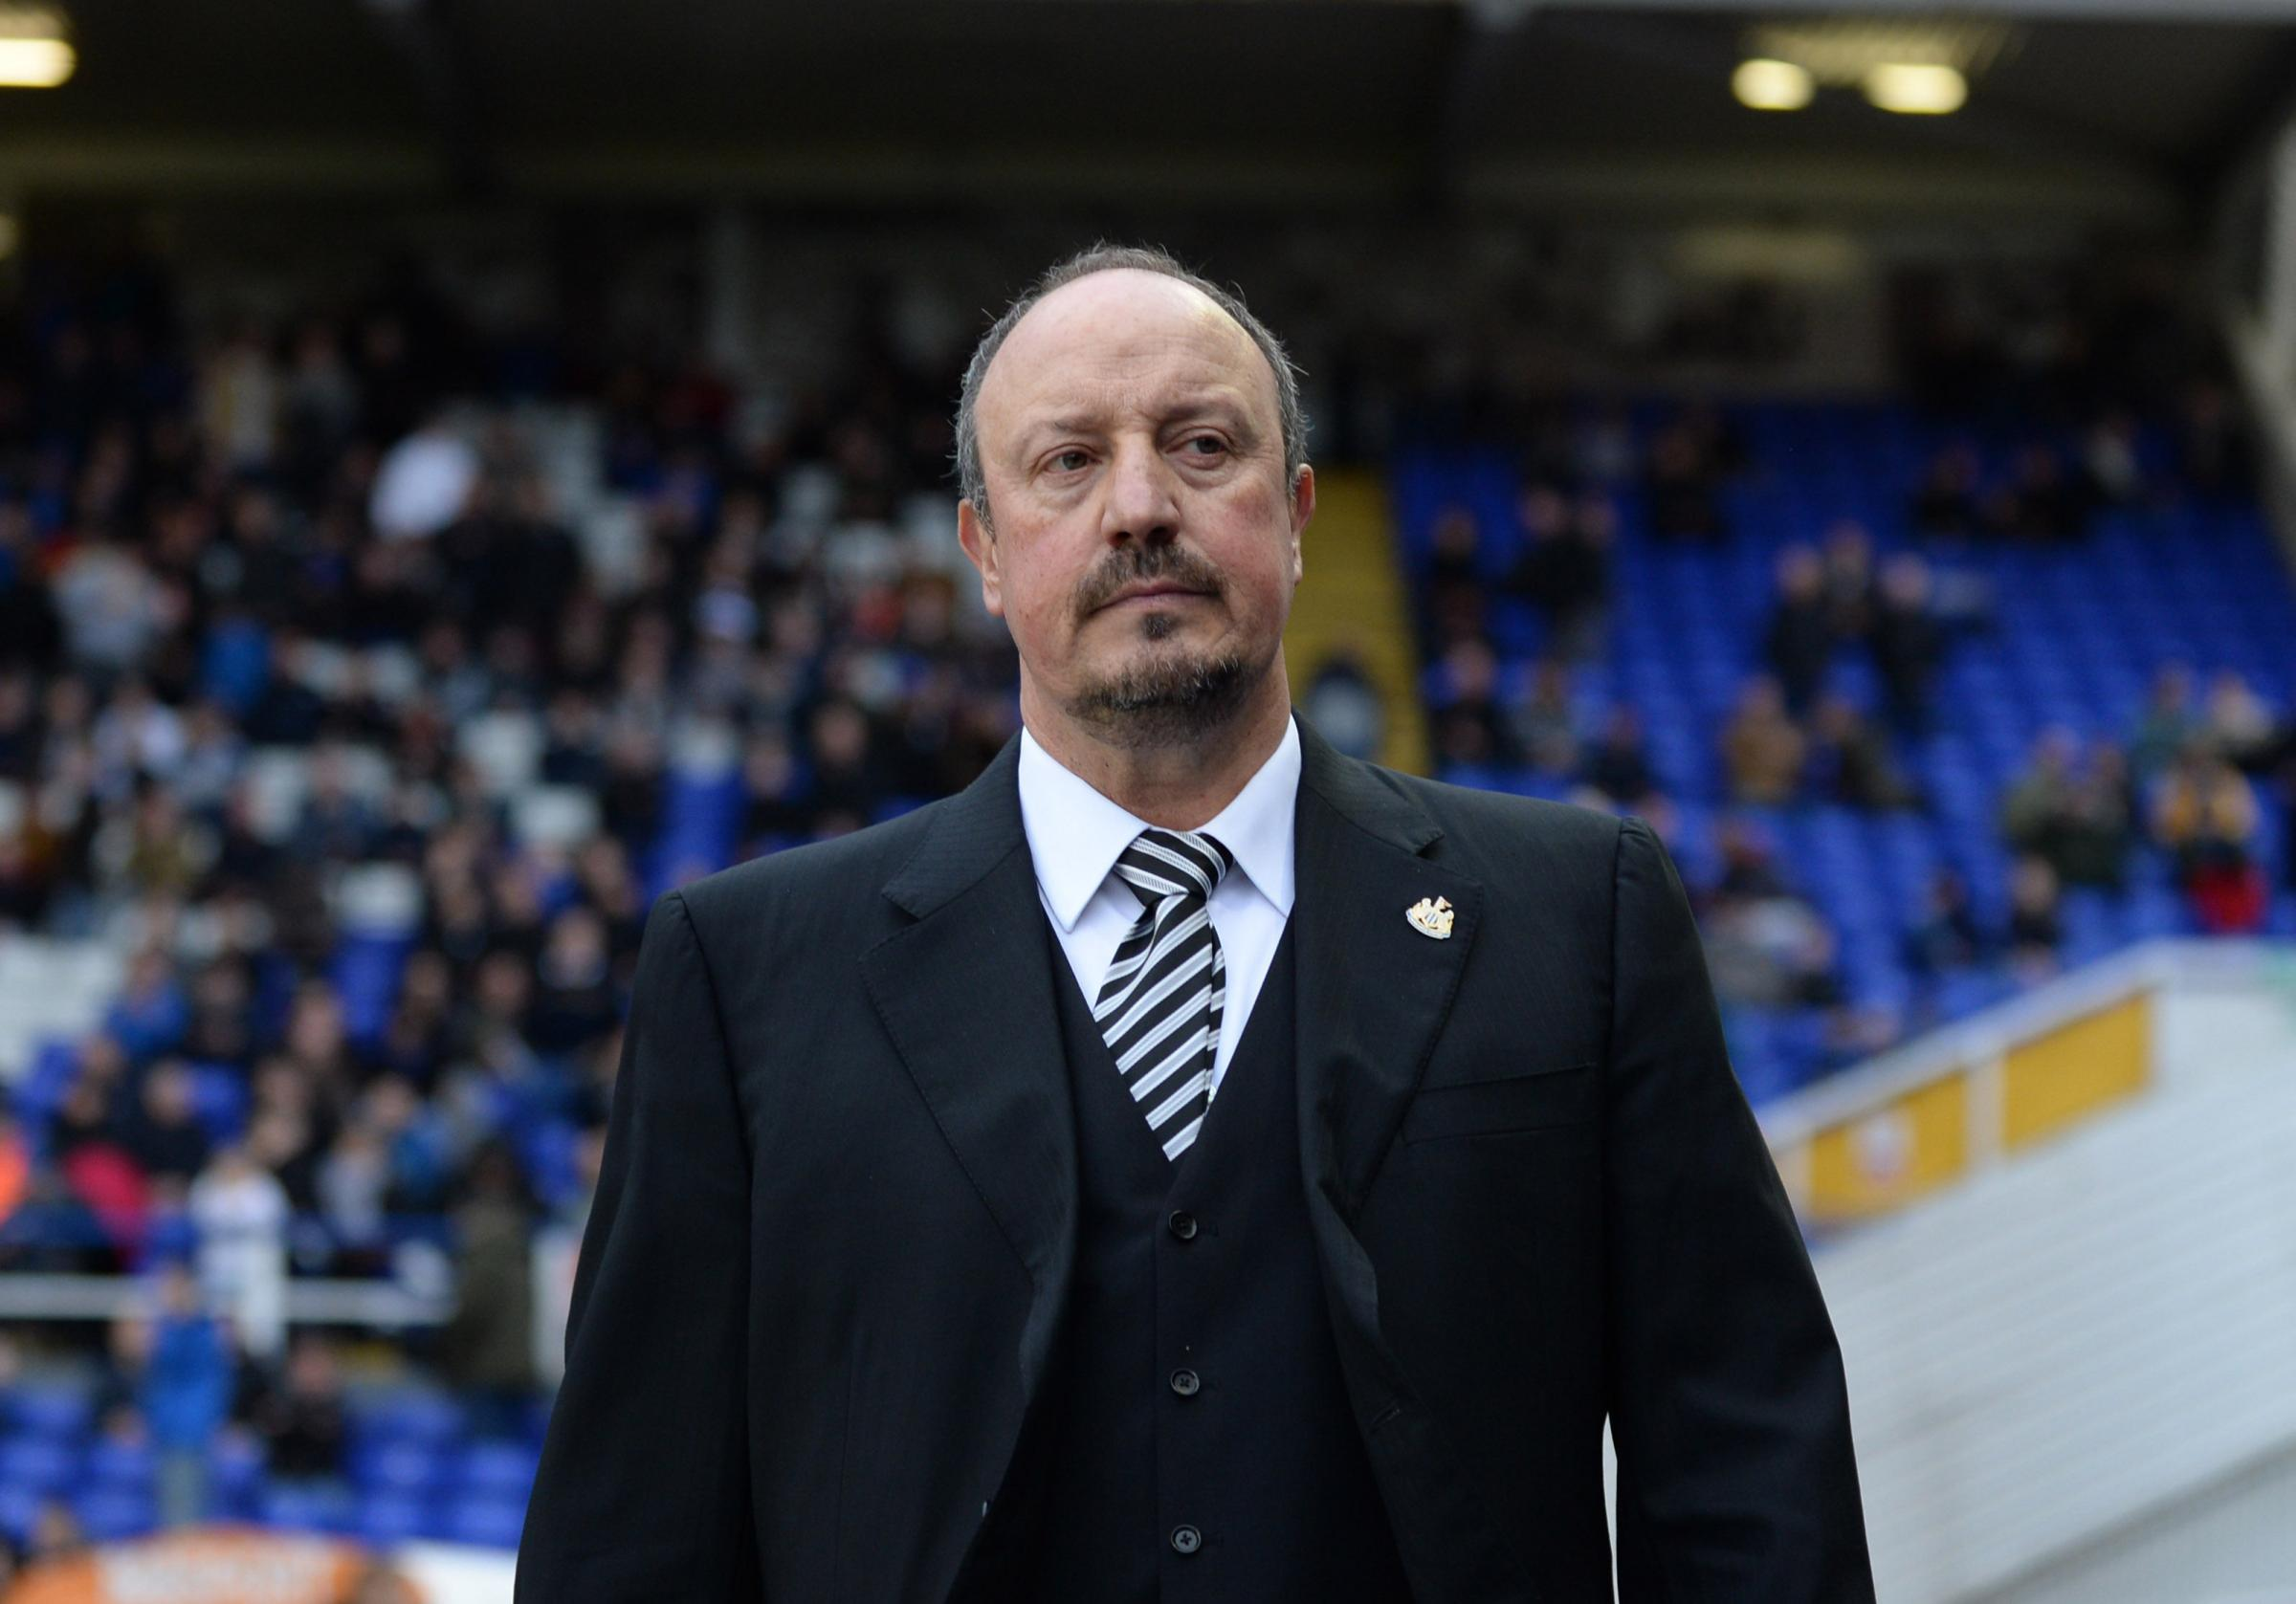 PORTUGUESE DATE: Rafael Benitez will take his Newcastle United side to Braga as part of their pre-season schedule